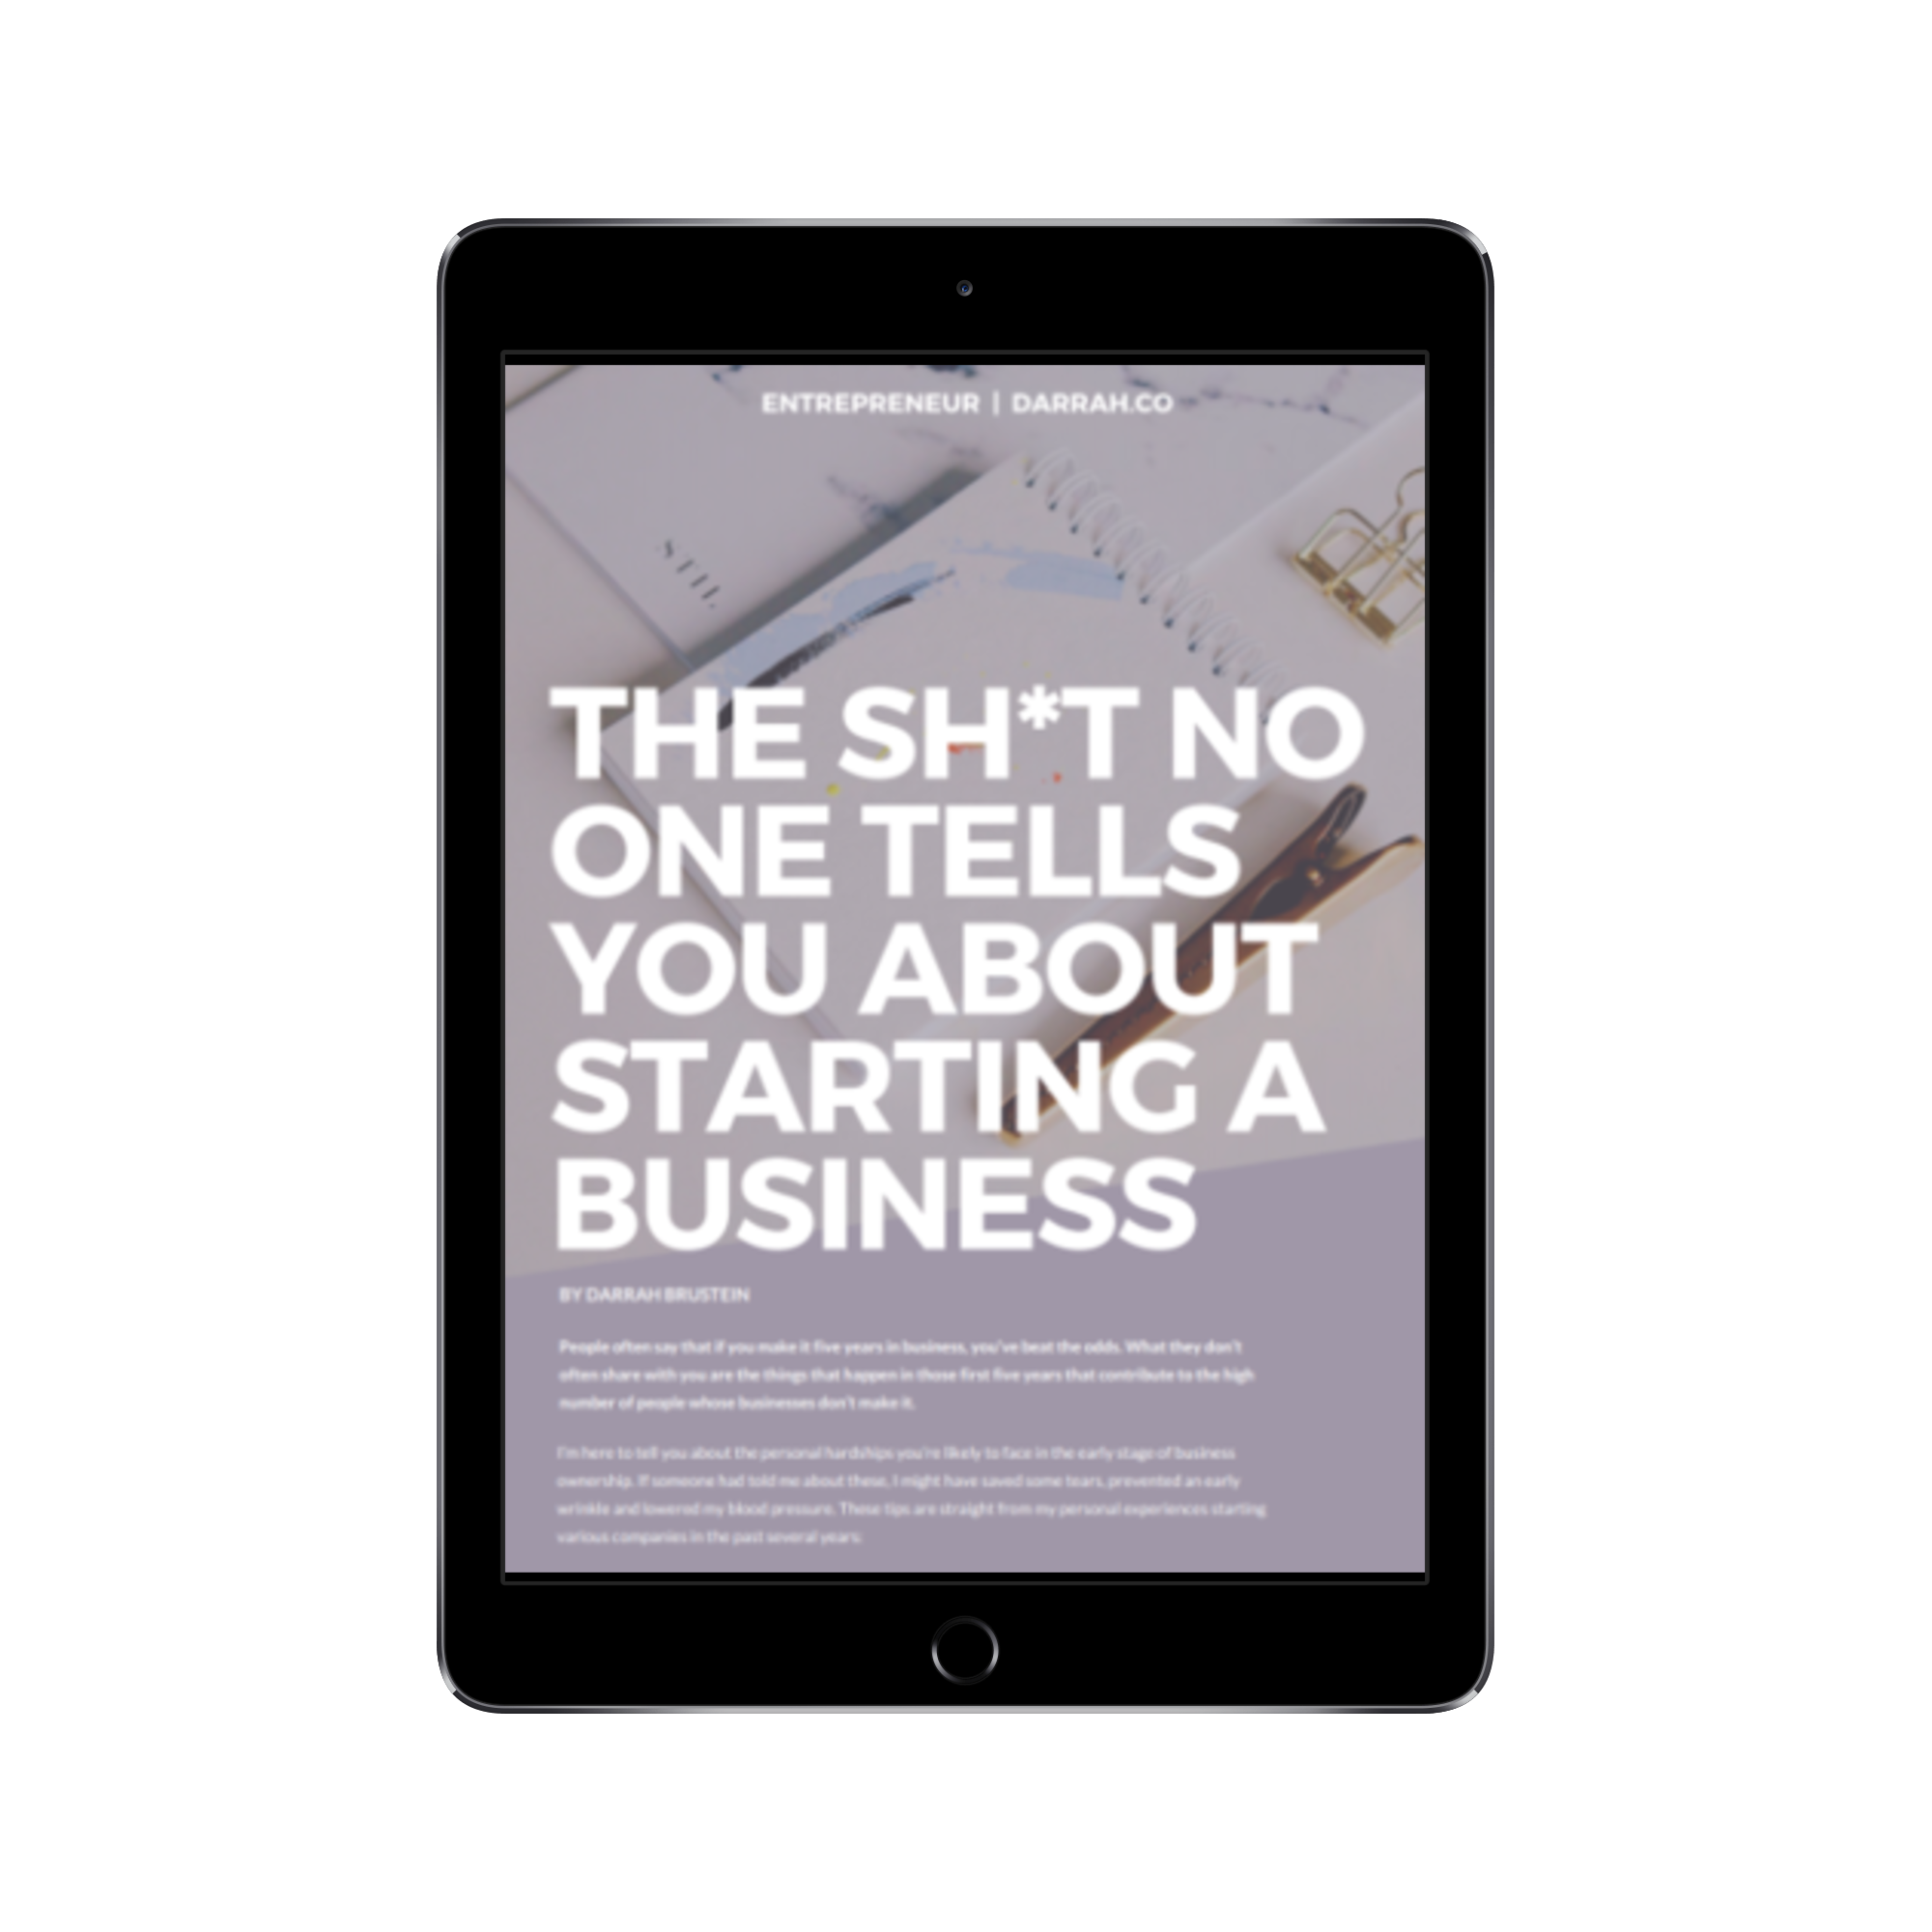 the sh*t no one tells you about starting a business -